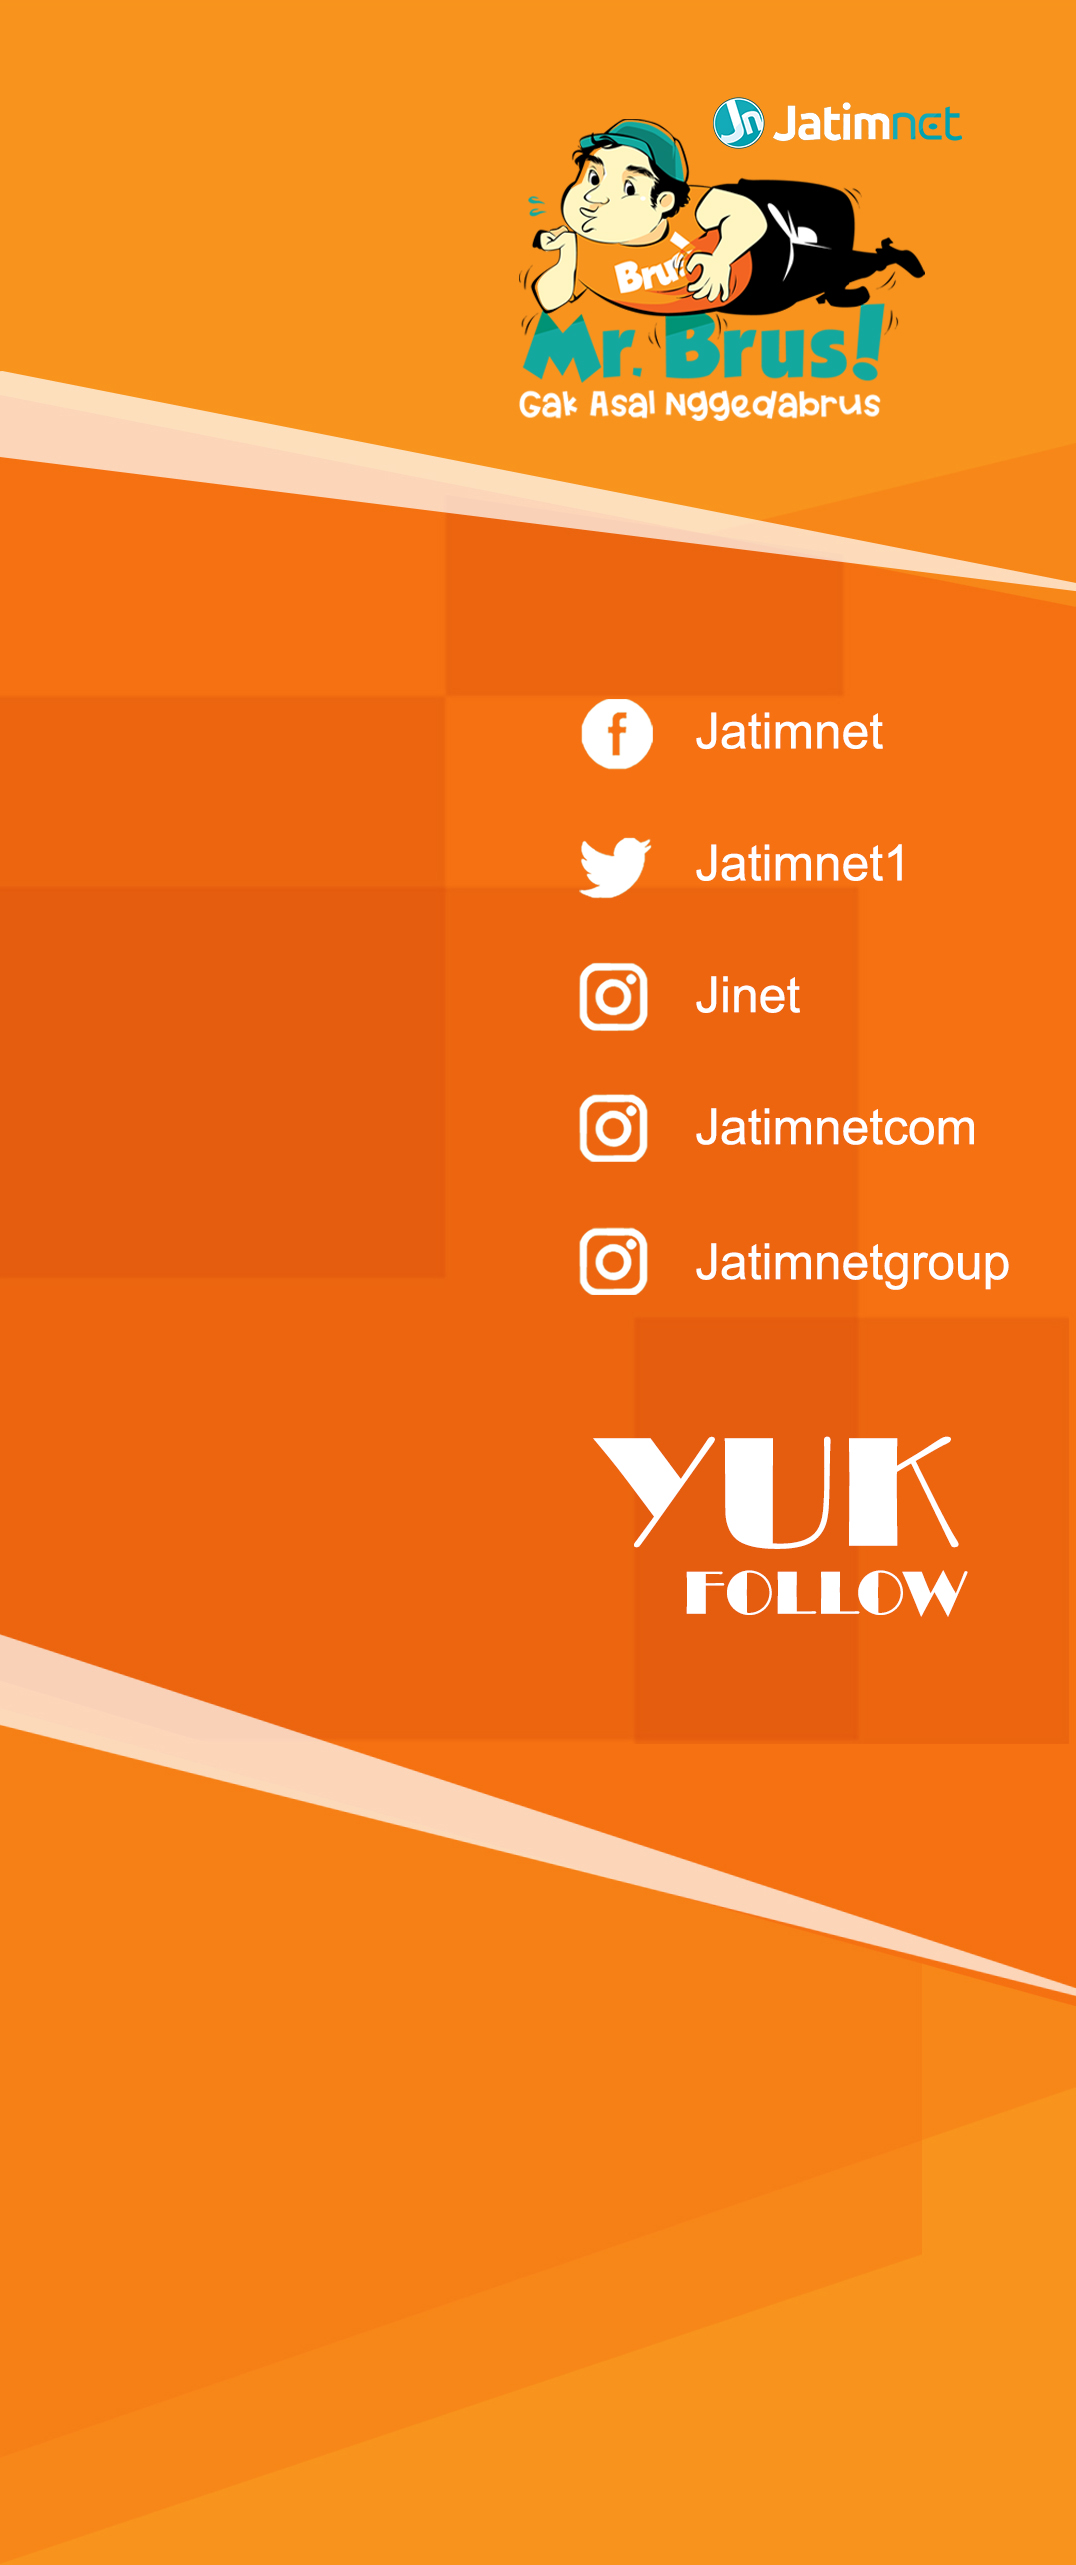 Follow Jatimnetcom